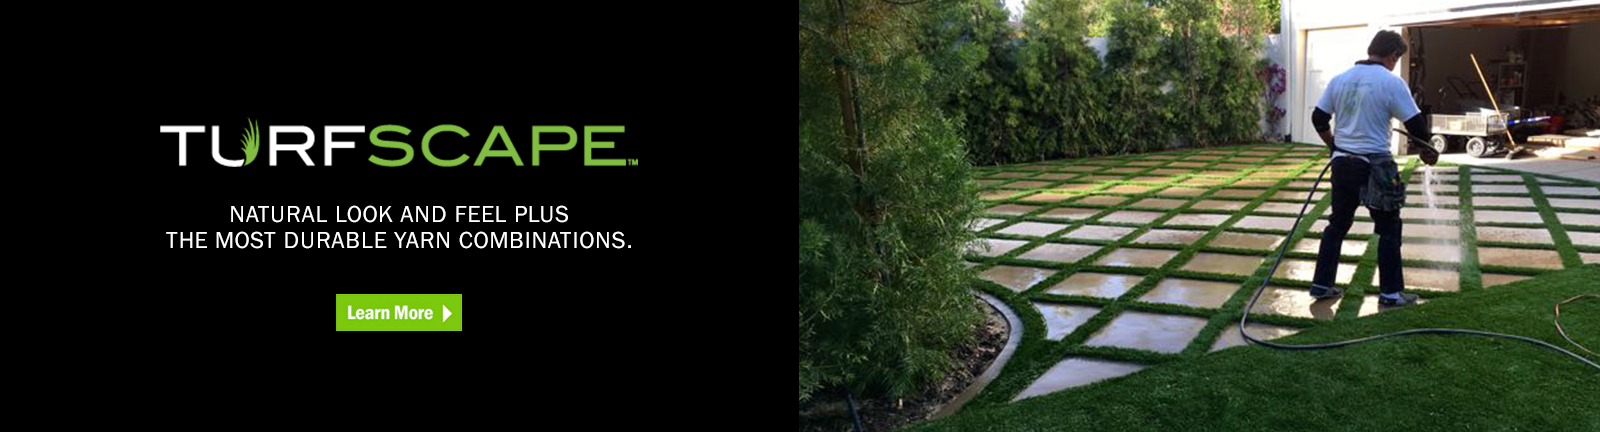 ActGlobal - TurfScape synthetic landsape turf